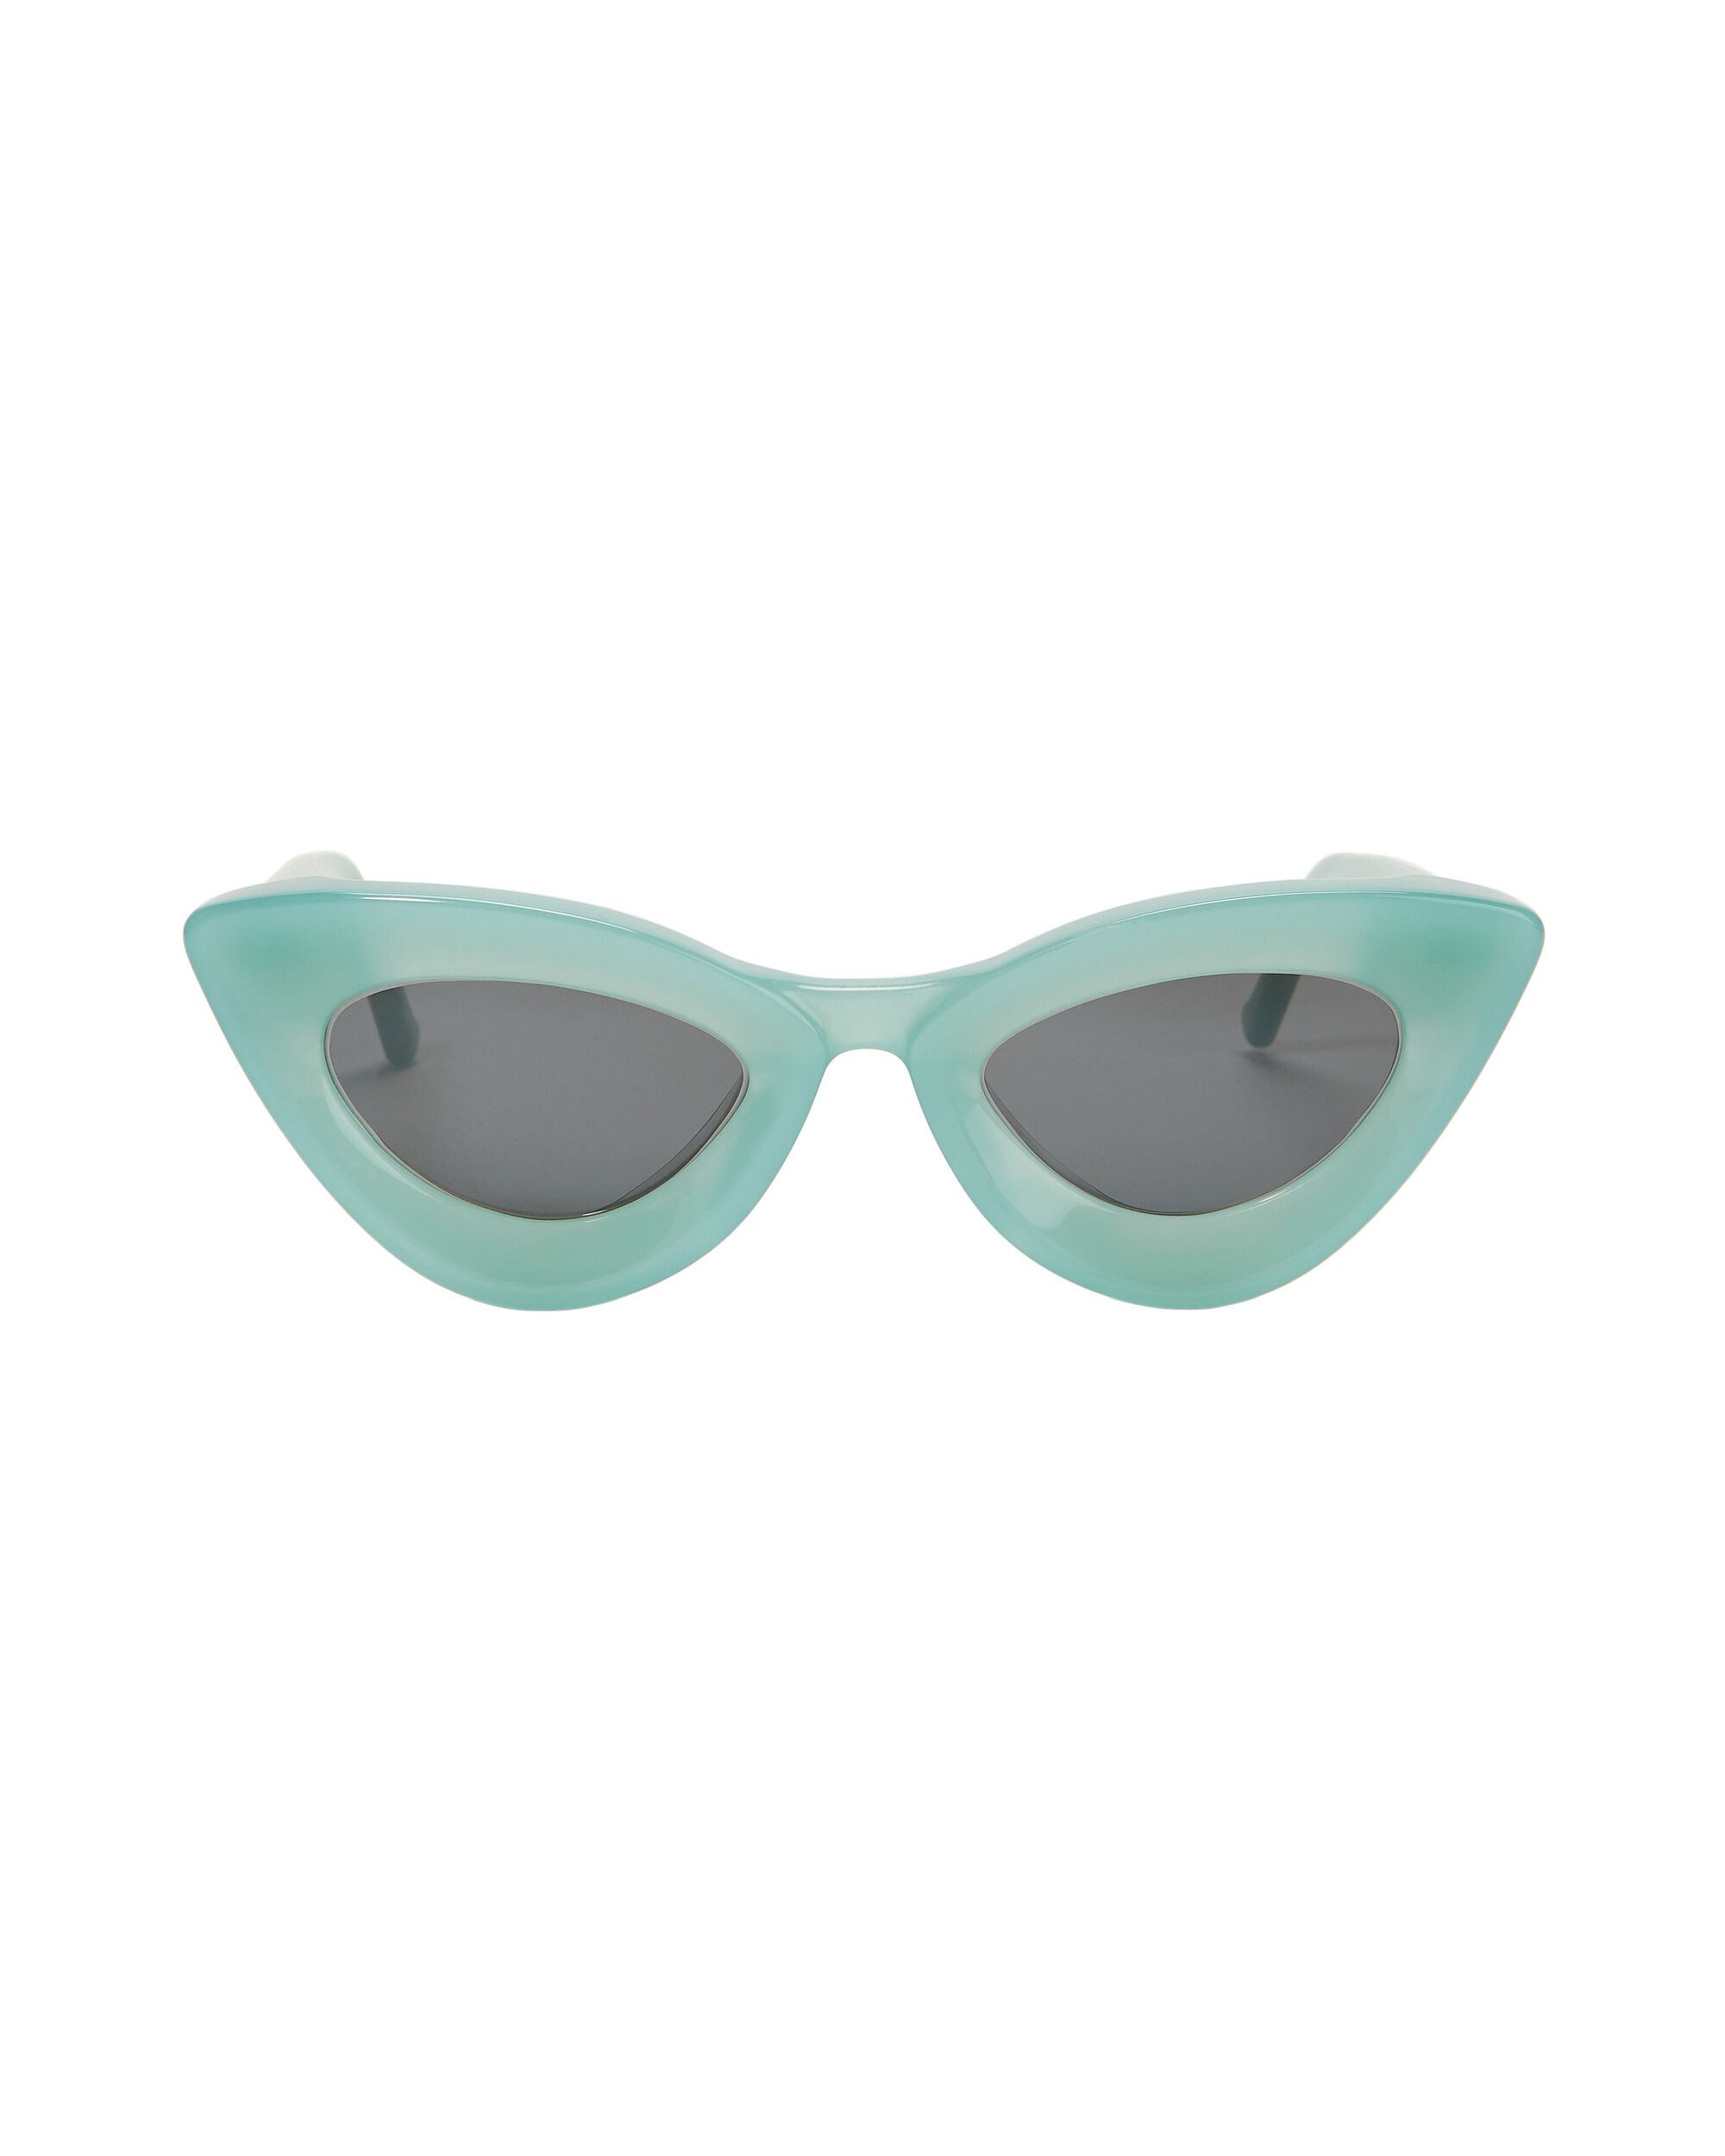 Iemall Green Cat Eye Sunglasses, GREEN-LT, hi-res